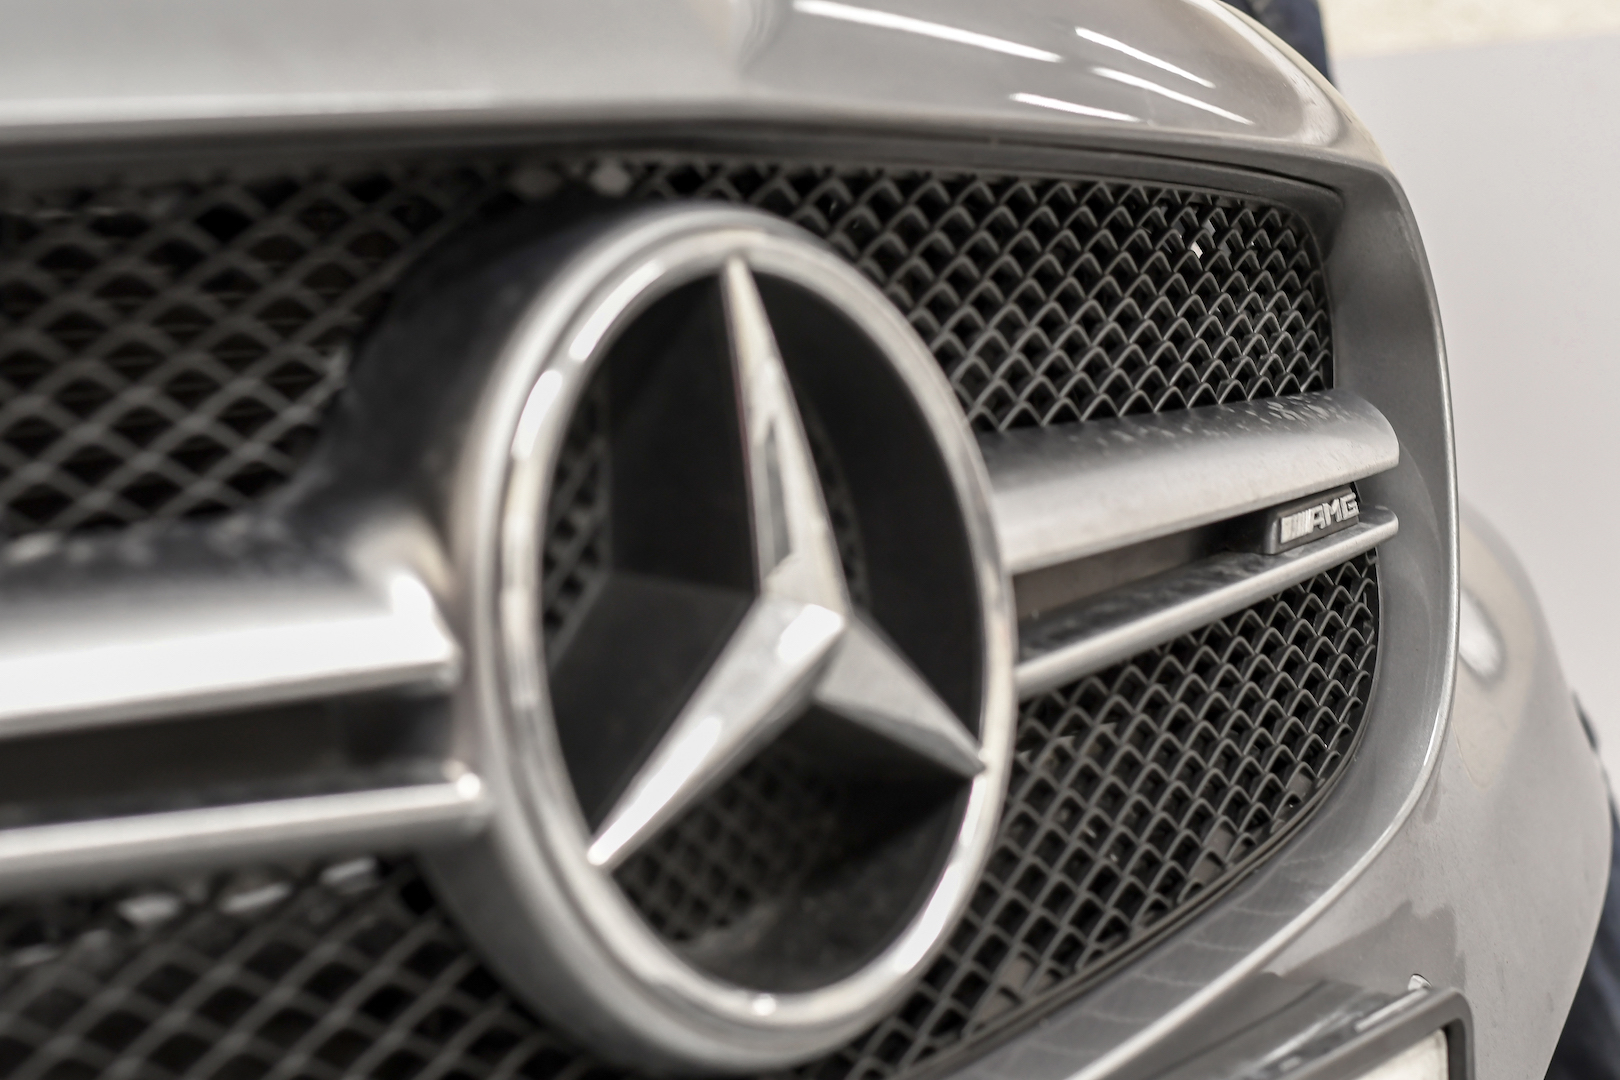 TDI Tuning | July Car of the Month - Mercedes-Benz C300 CDI